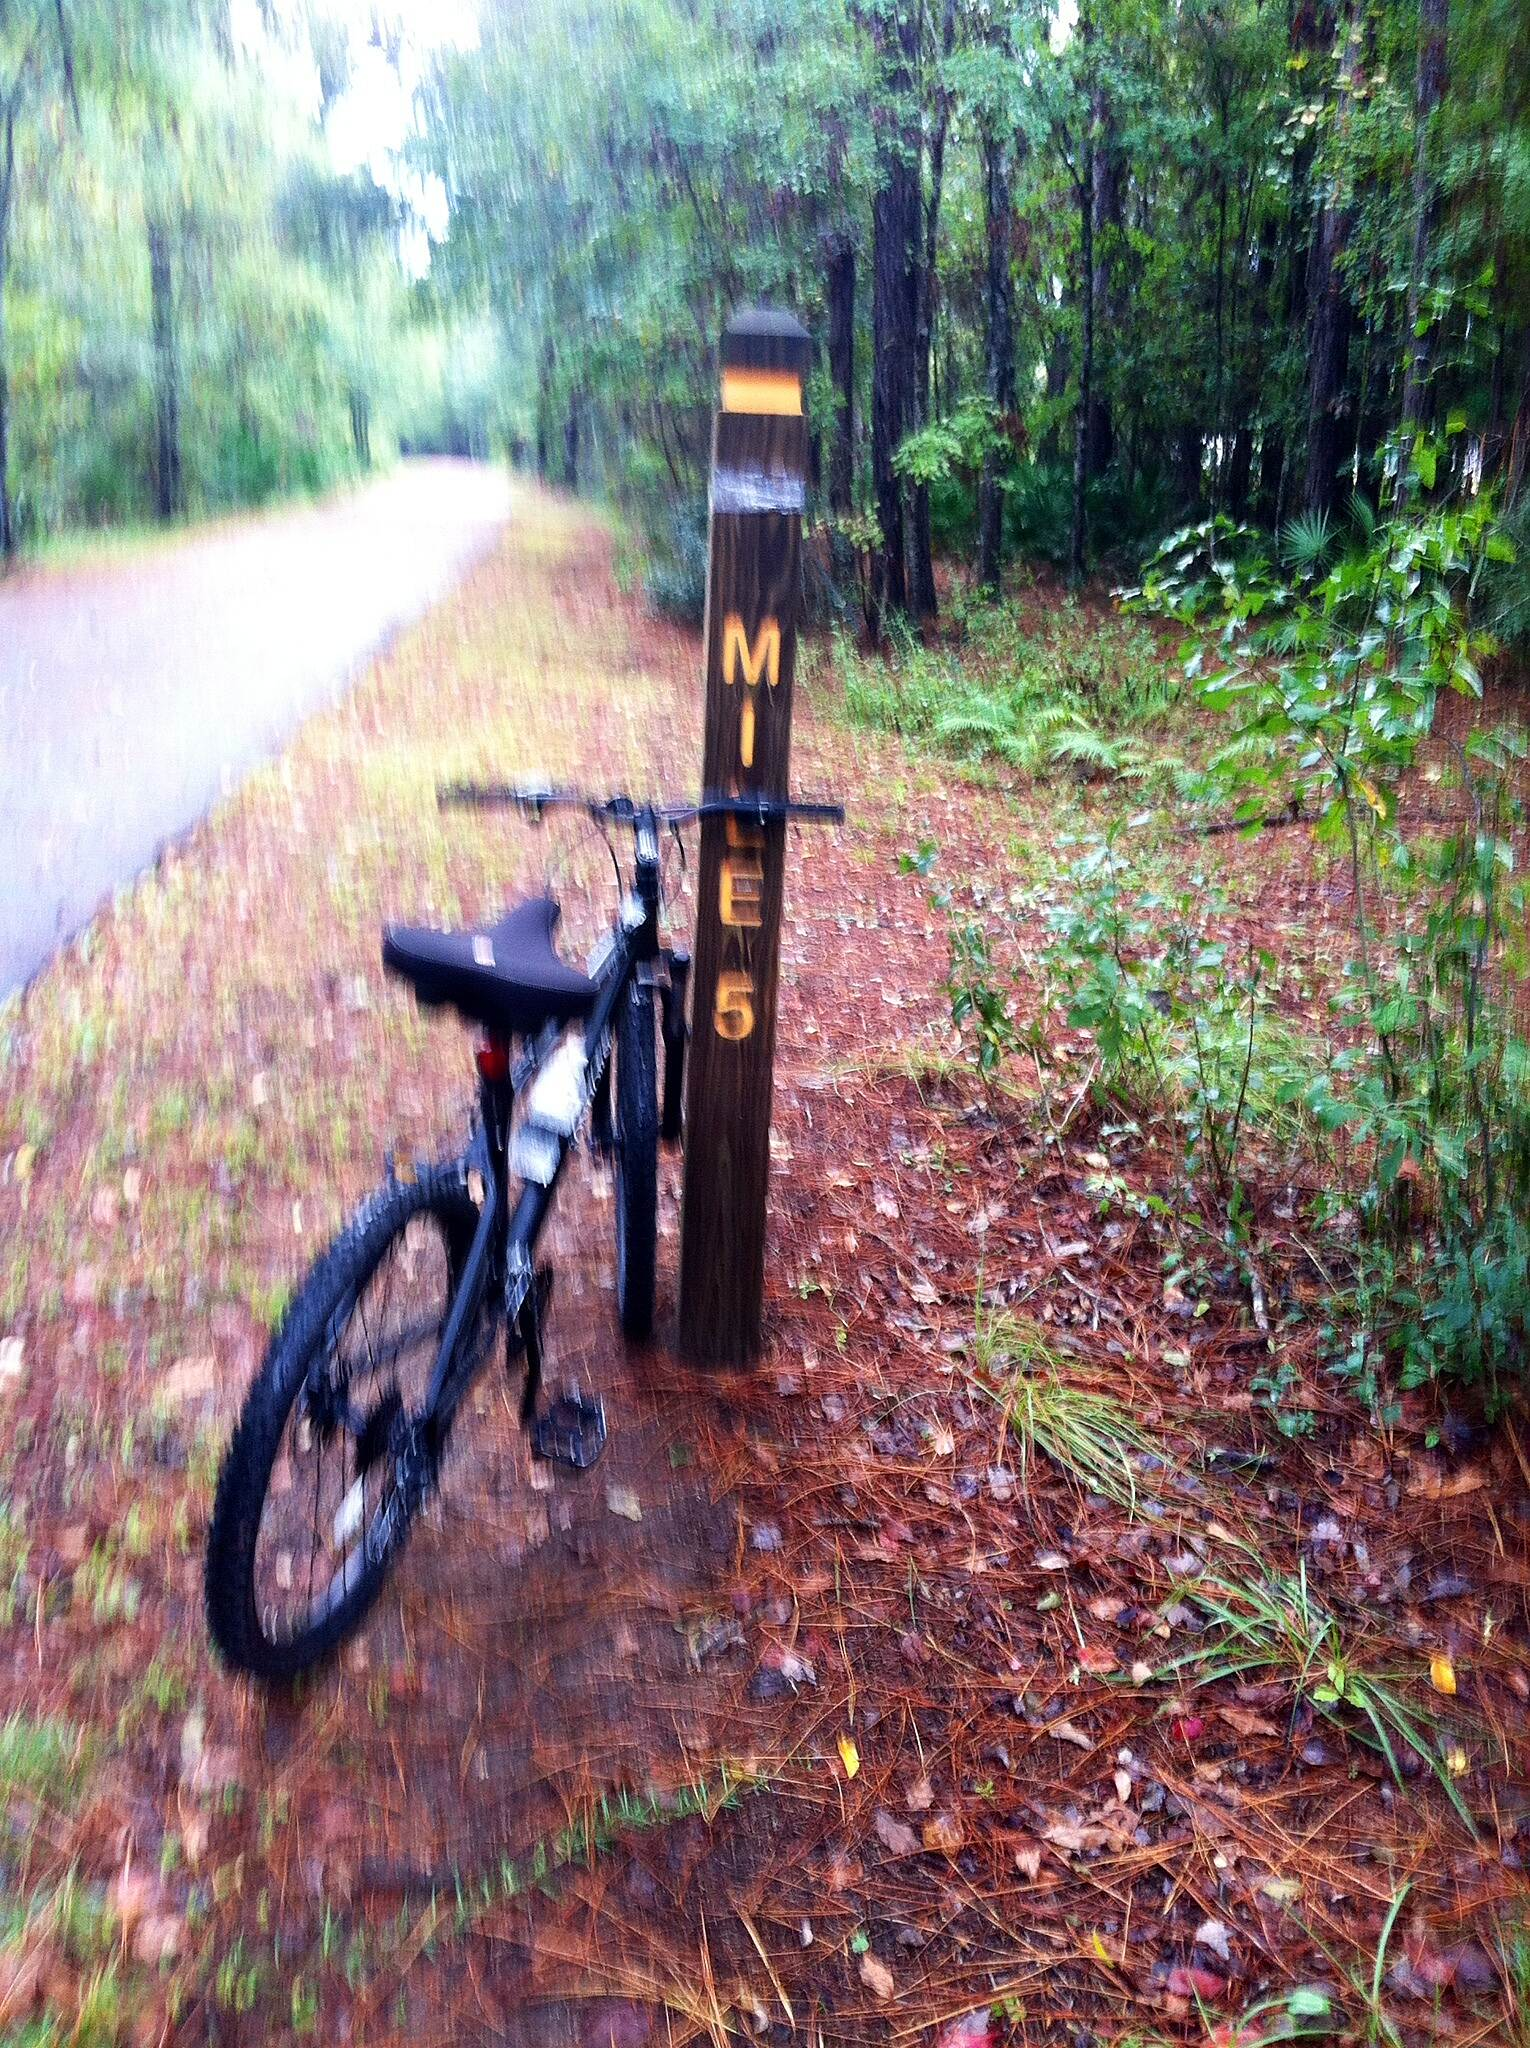 Jacksonville-Baldwin Rail-Trail Mile markers  Mile maker post are very visible.